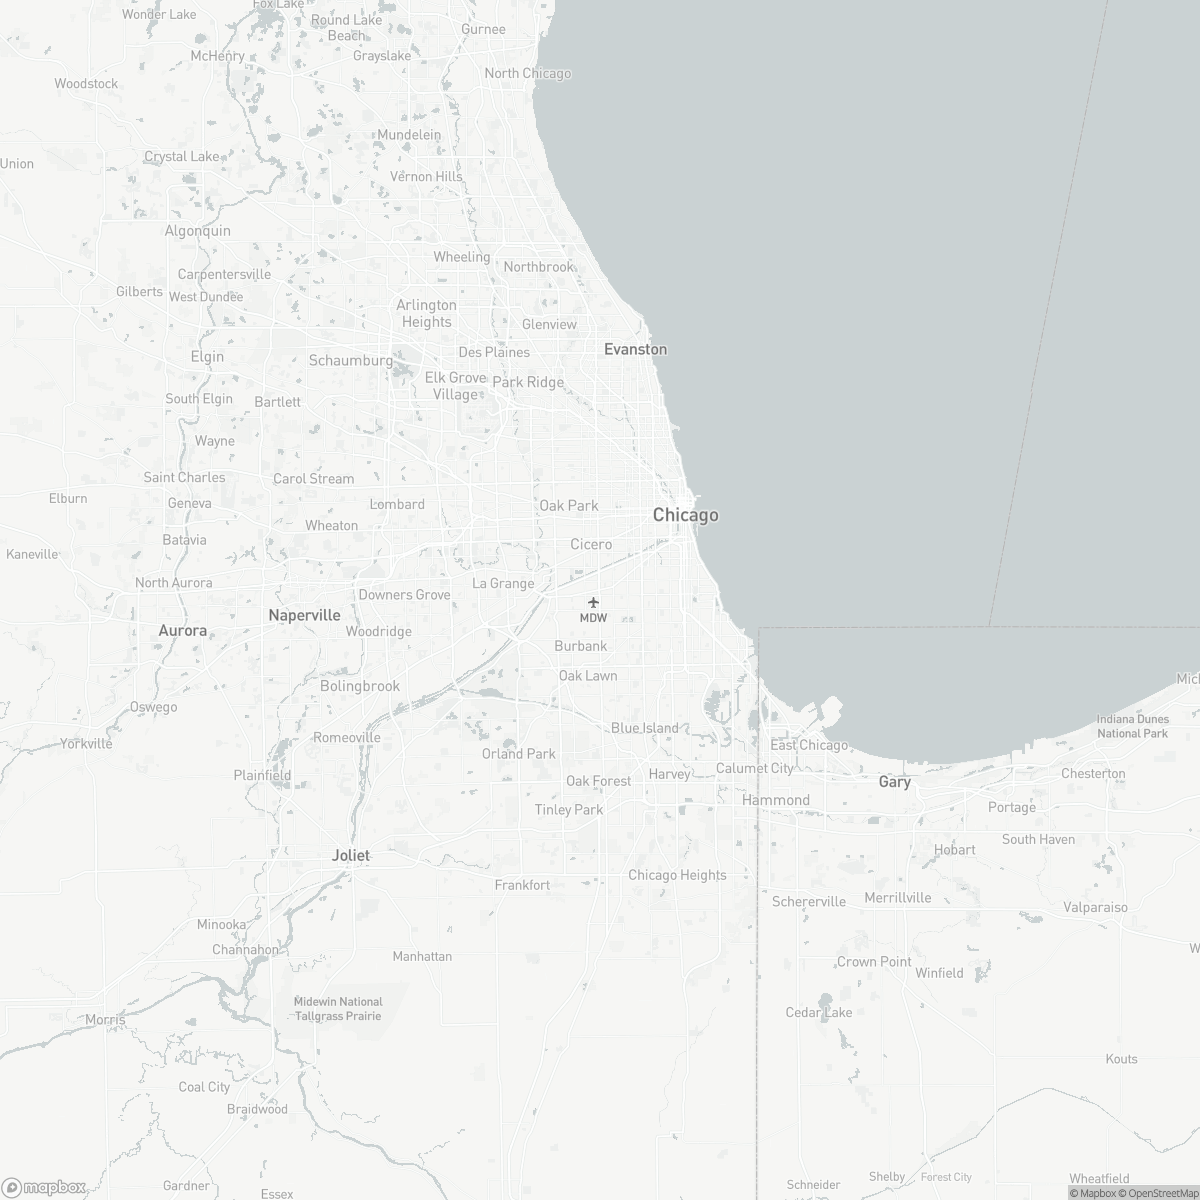 Map of Chicago Midway Airport MDW surrounding area of Chicago Illinois